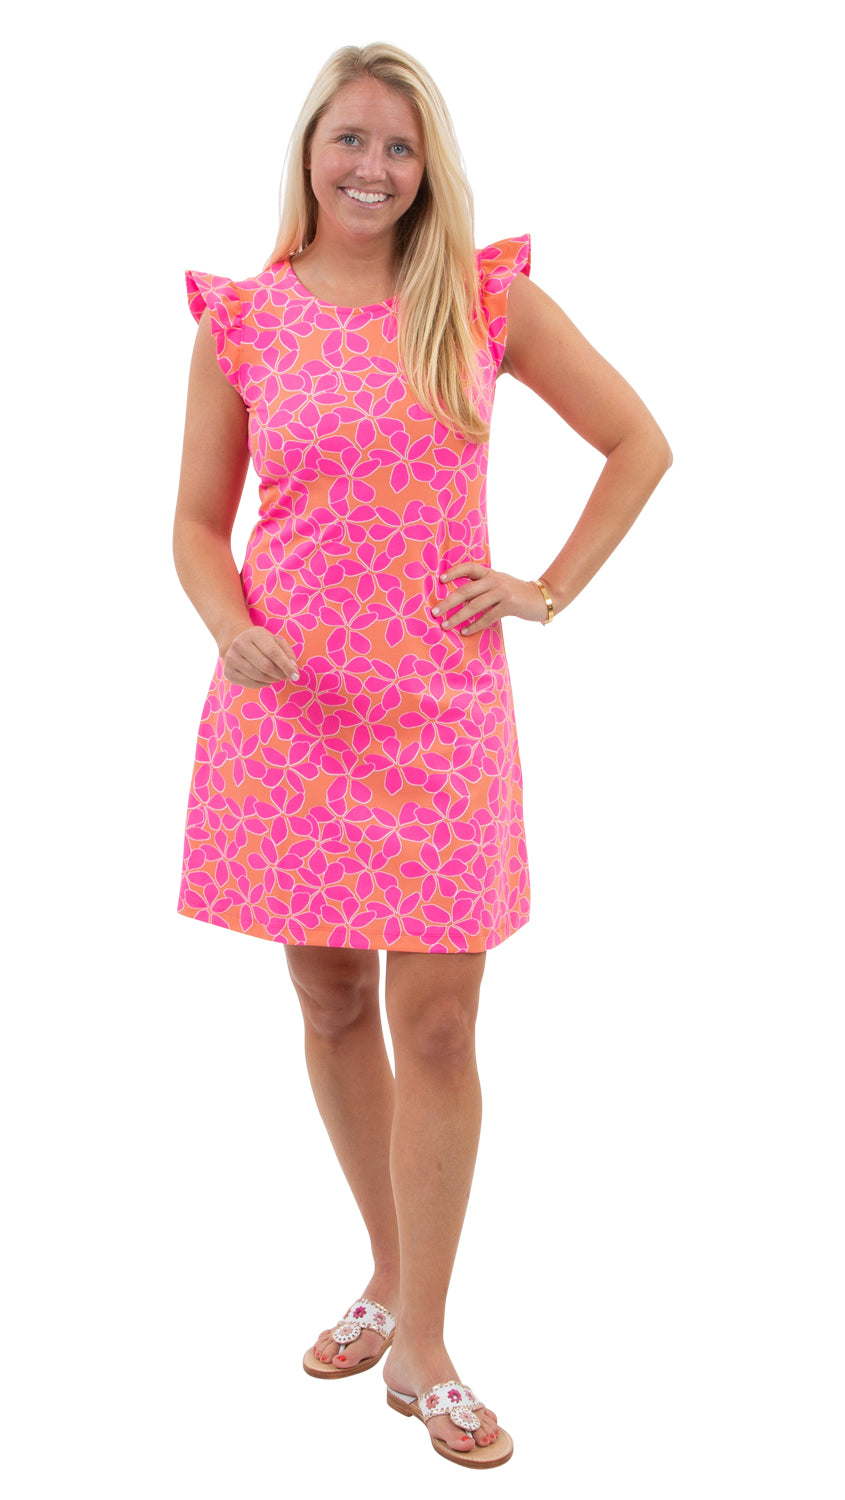 Jojo Dress - Resort Hibiscus Coral/Pink- SAMPLE FINAL SALE